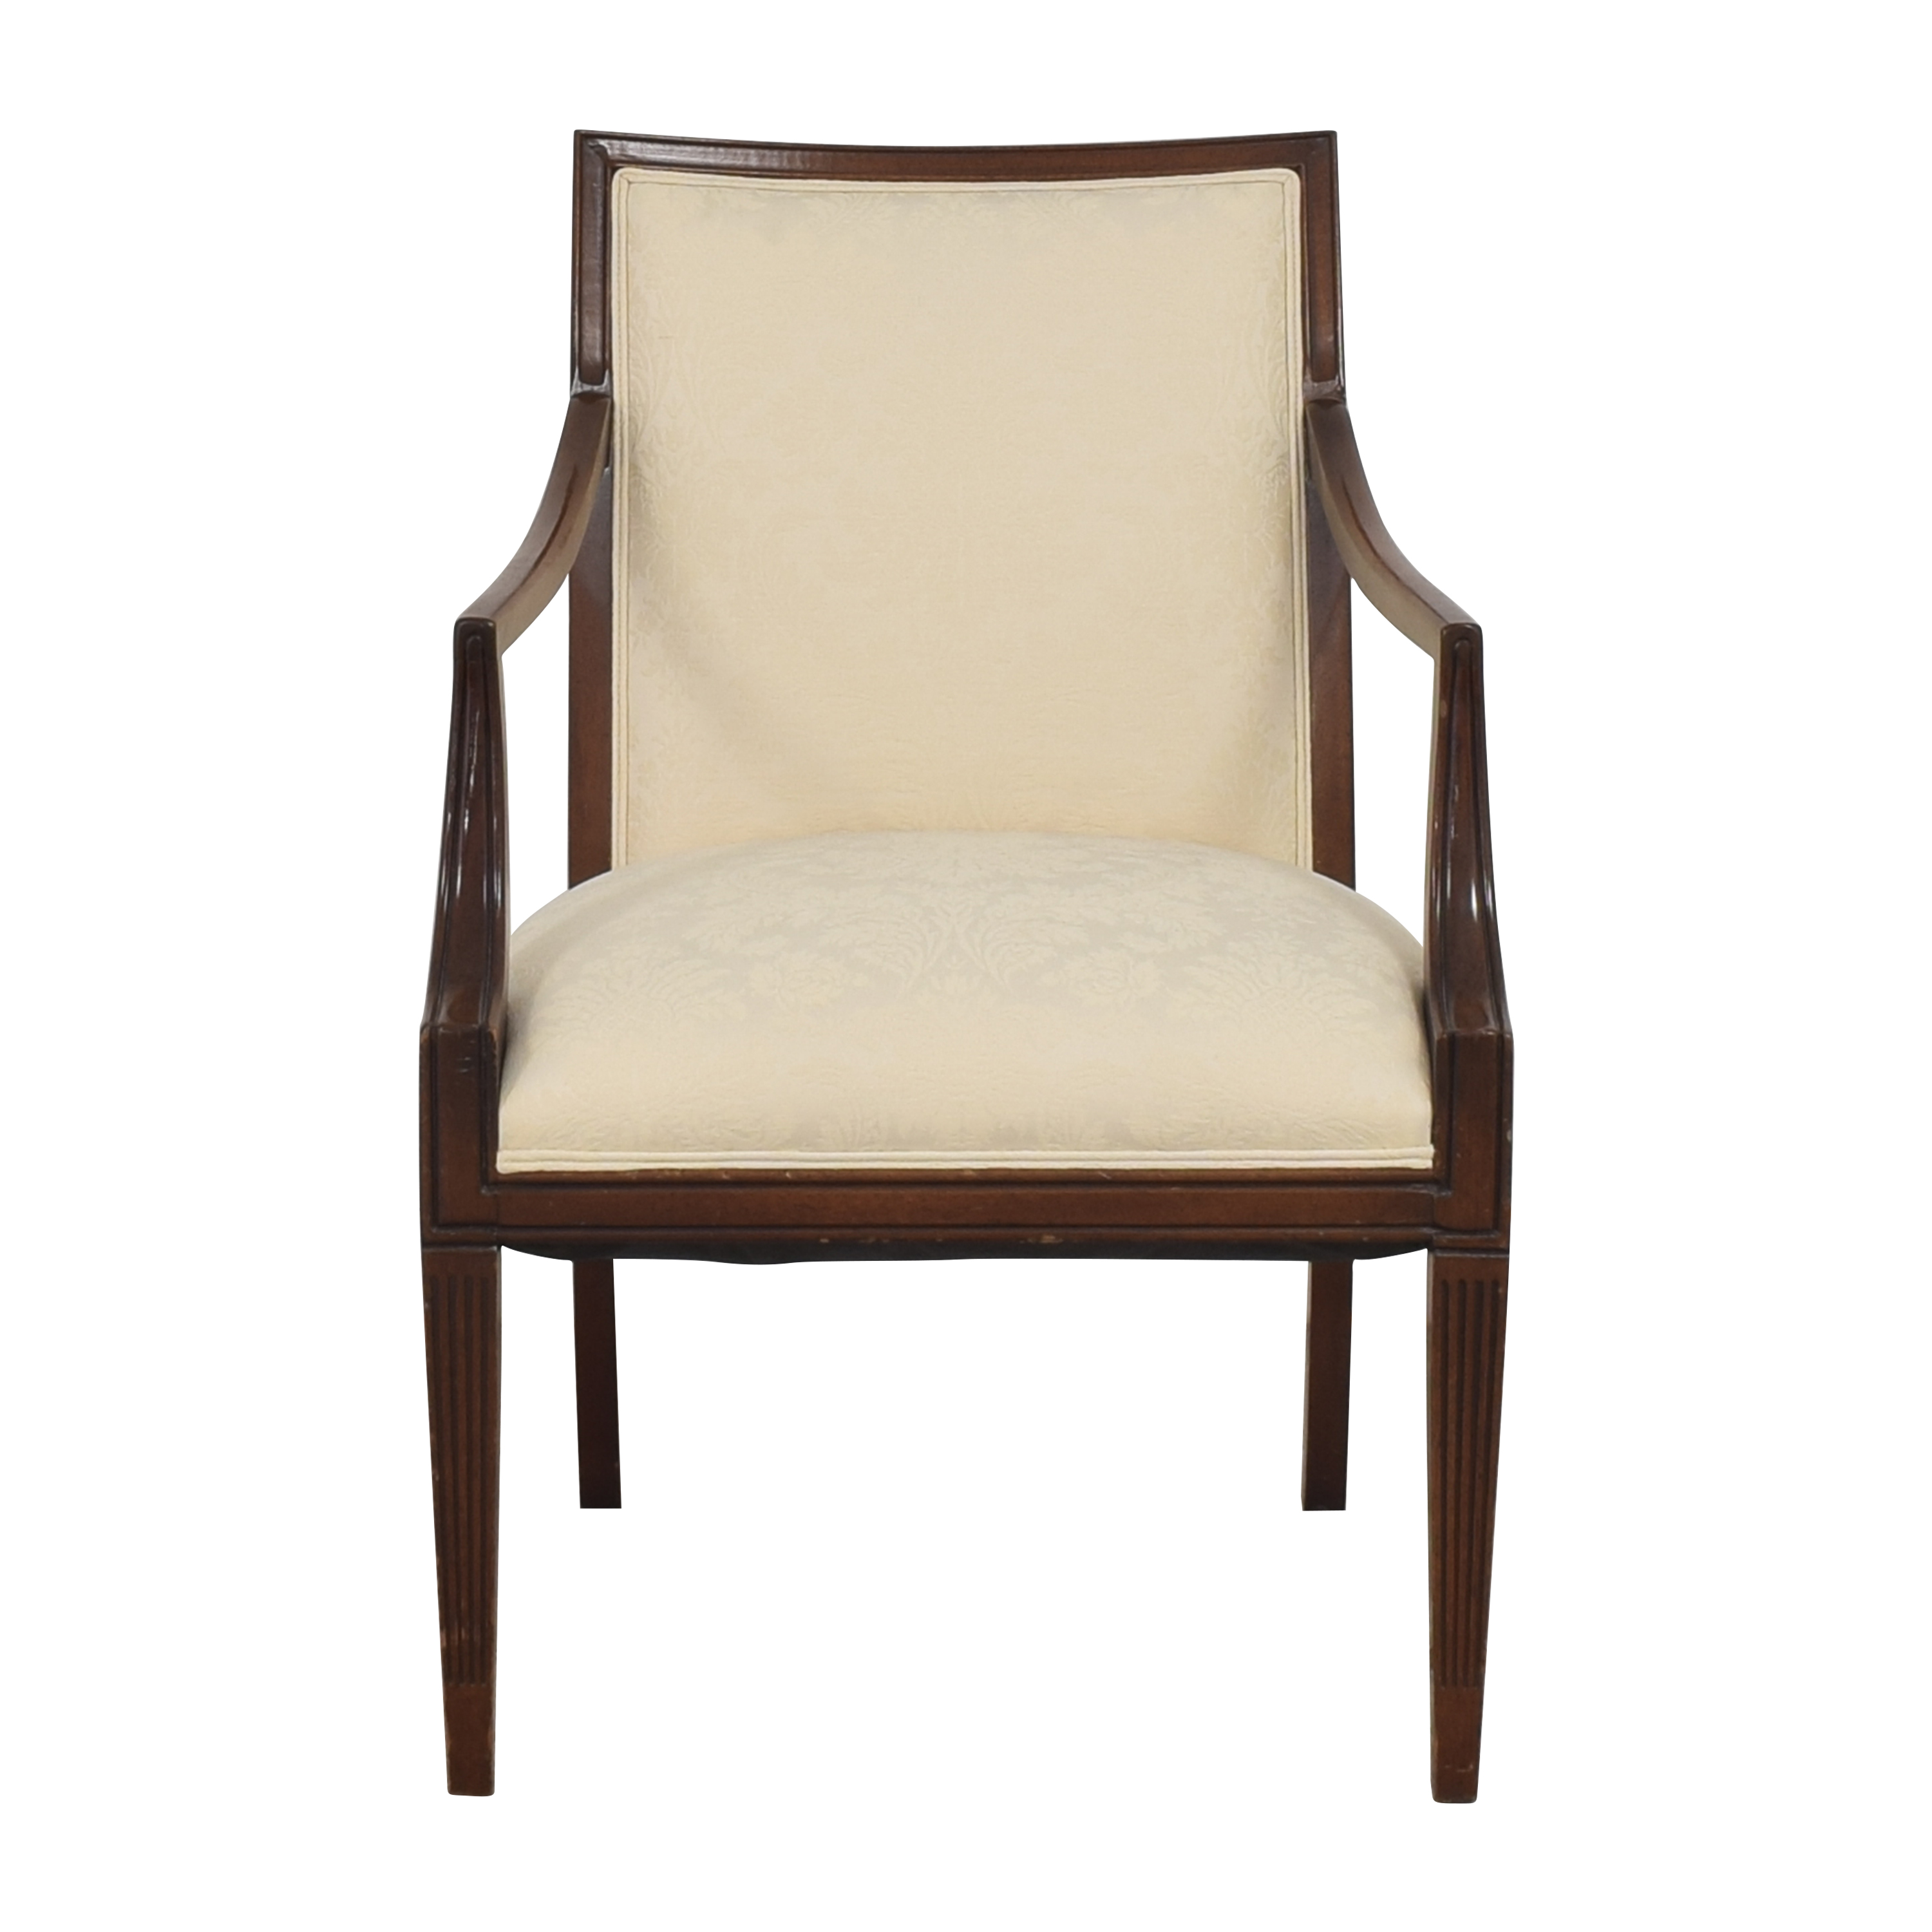 Vintage Damask Chair for sale